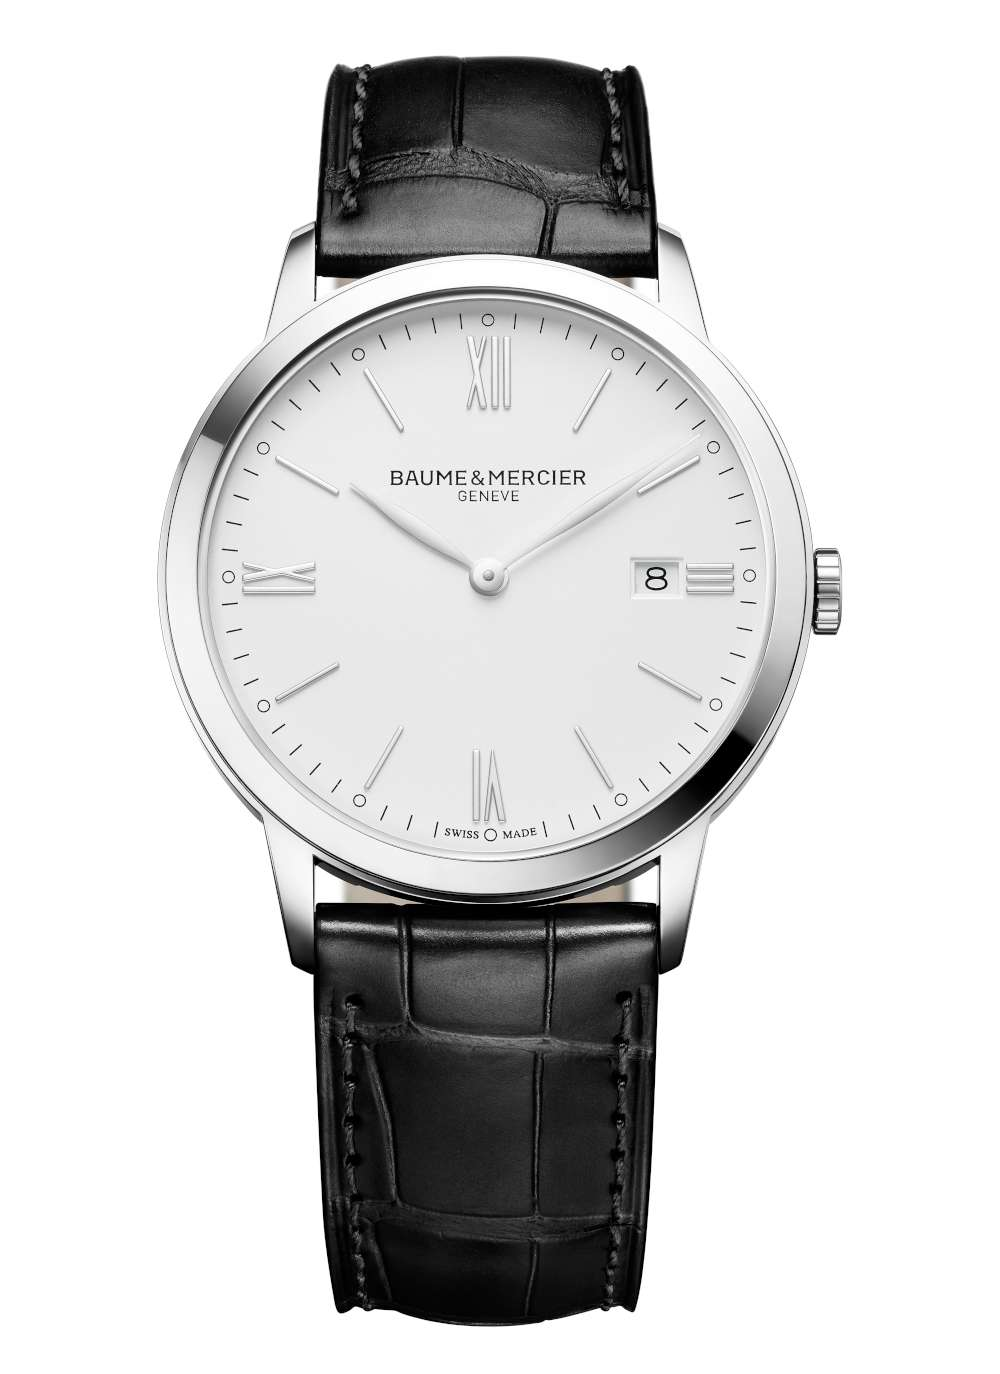 Baume & Mercier My Classima reference 10323